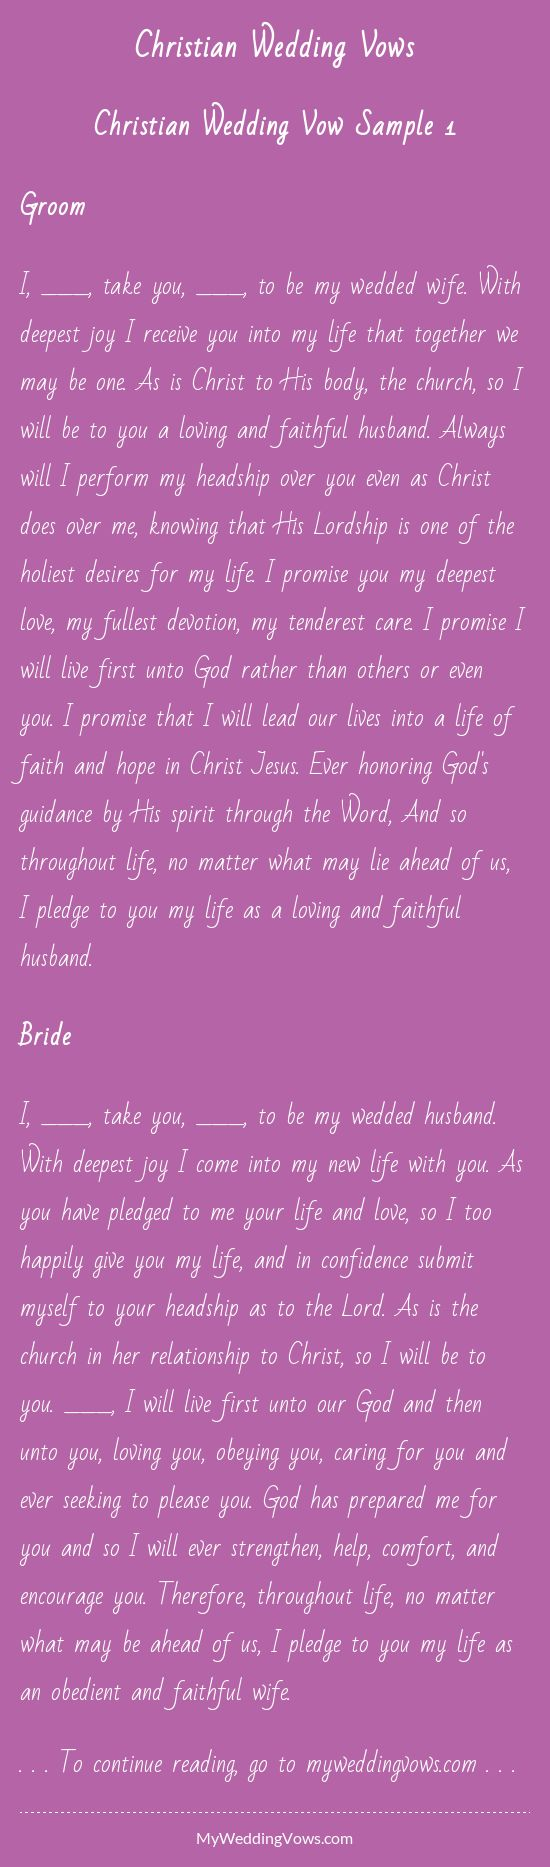 Traditional Christian Marriage Vows